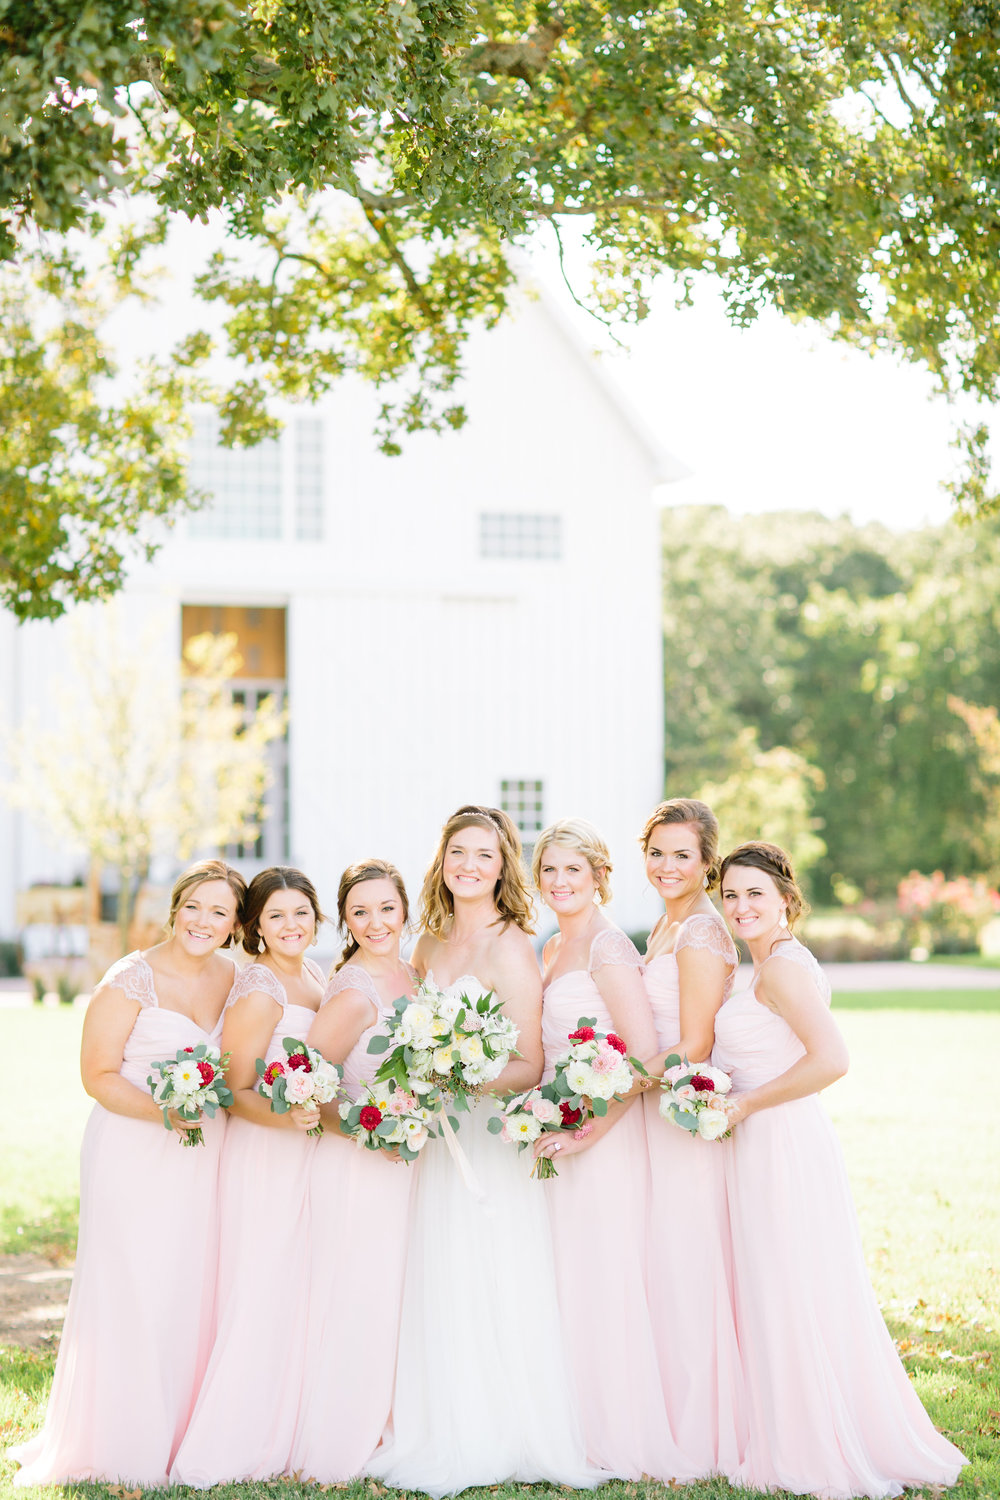 White Sparrow Barn Wedding - Blush Bridesmaid Dresses